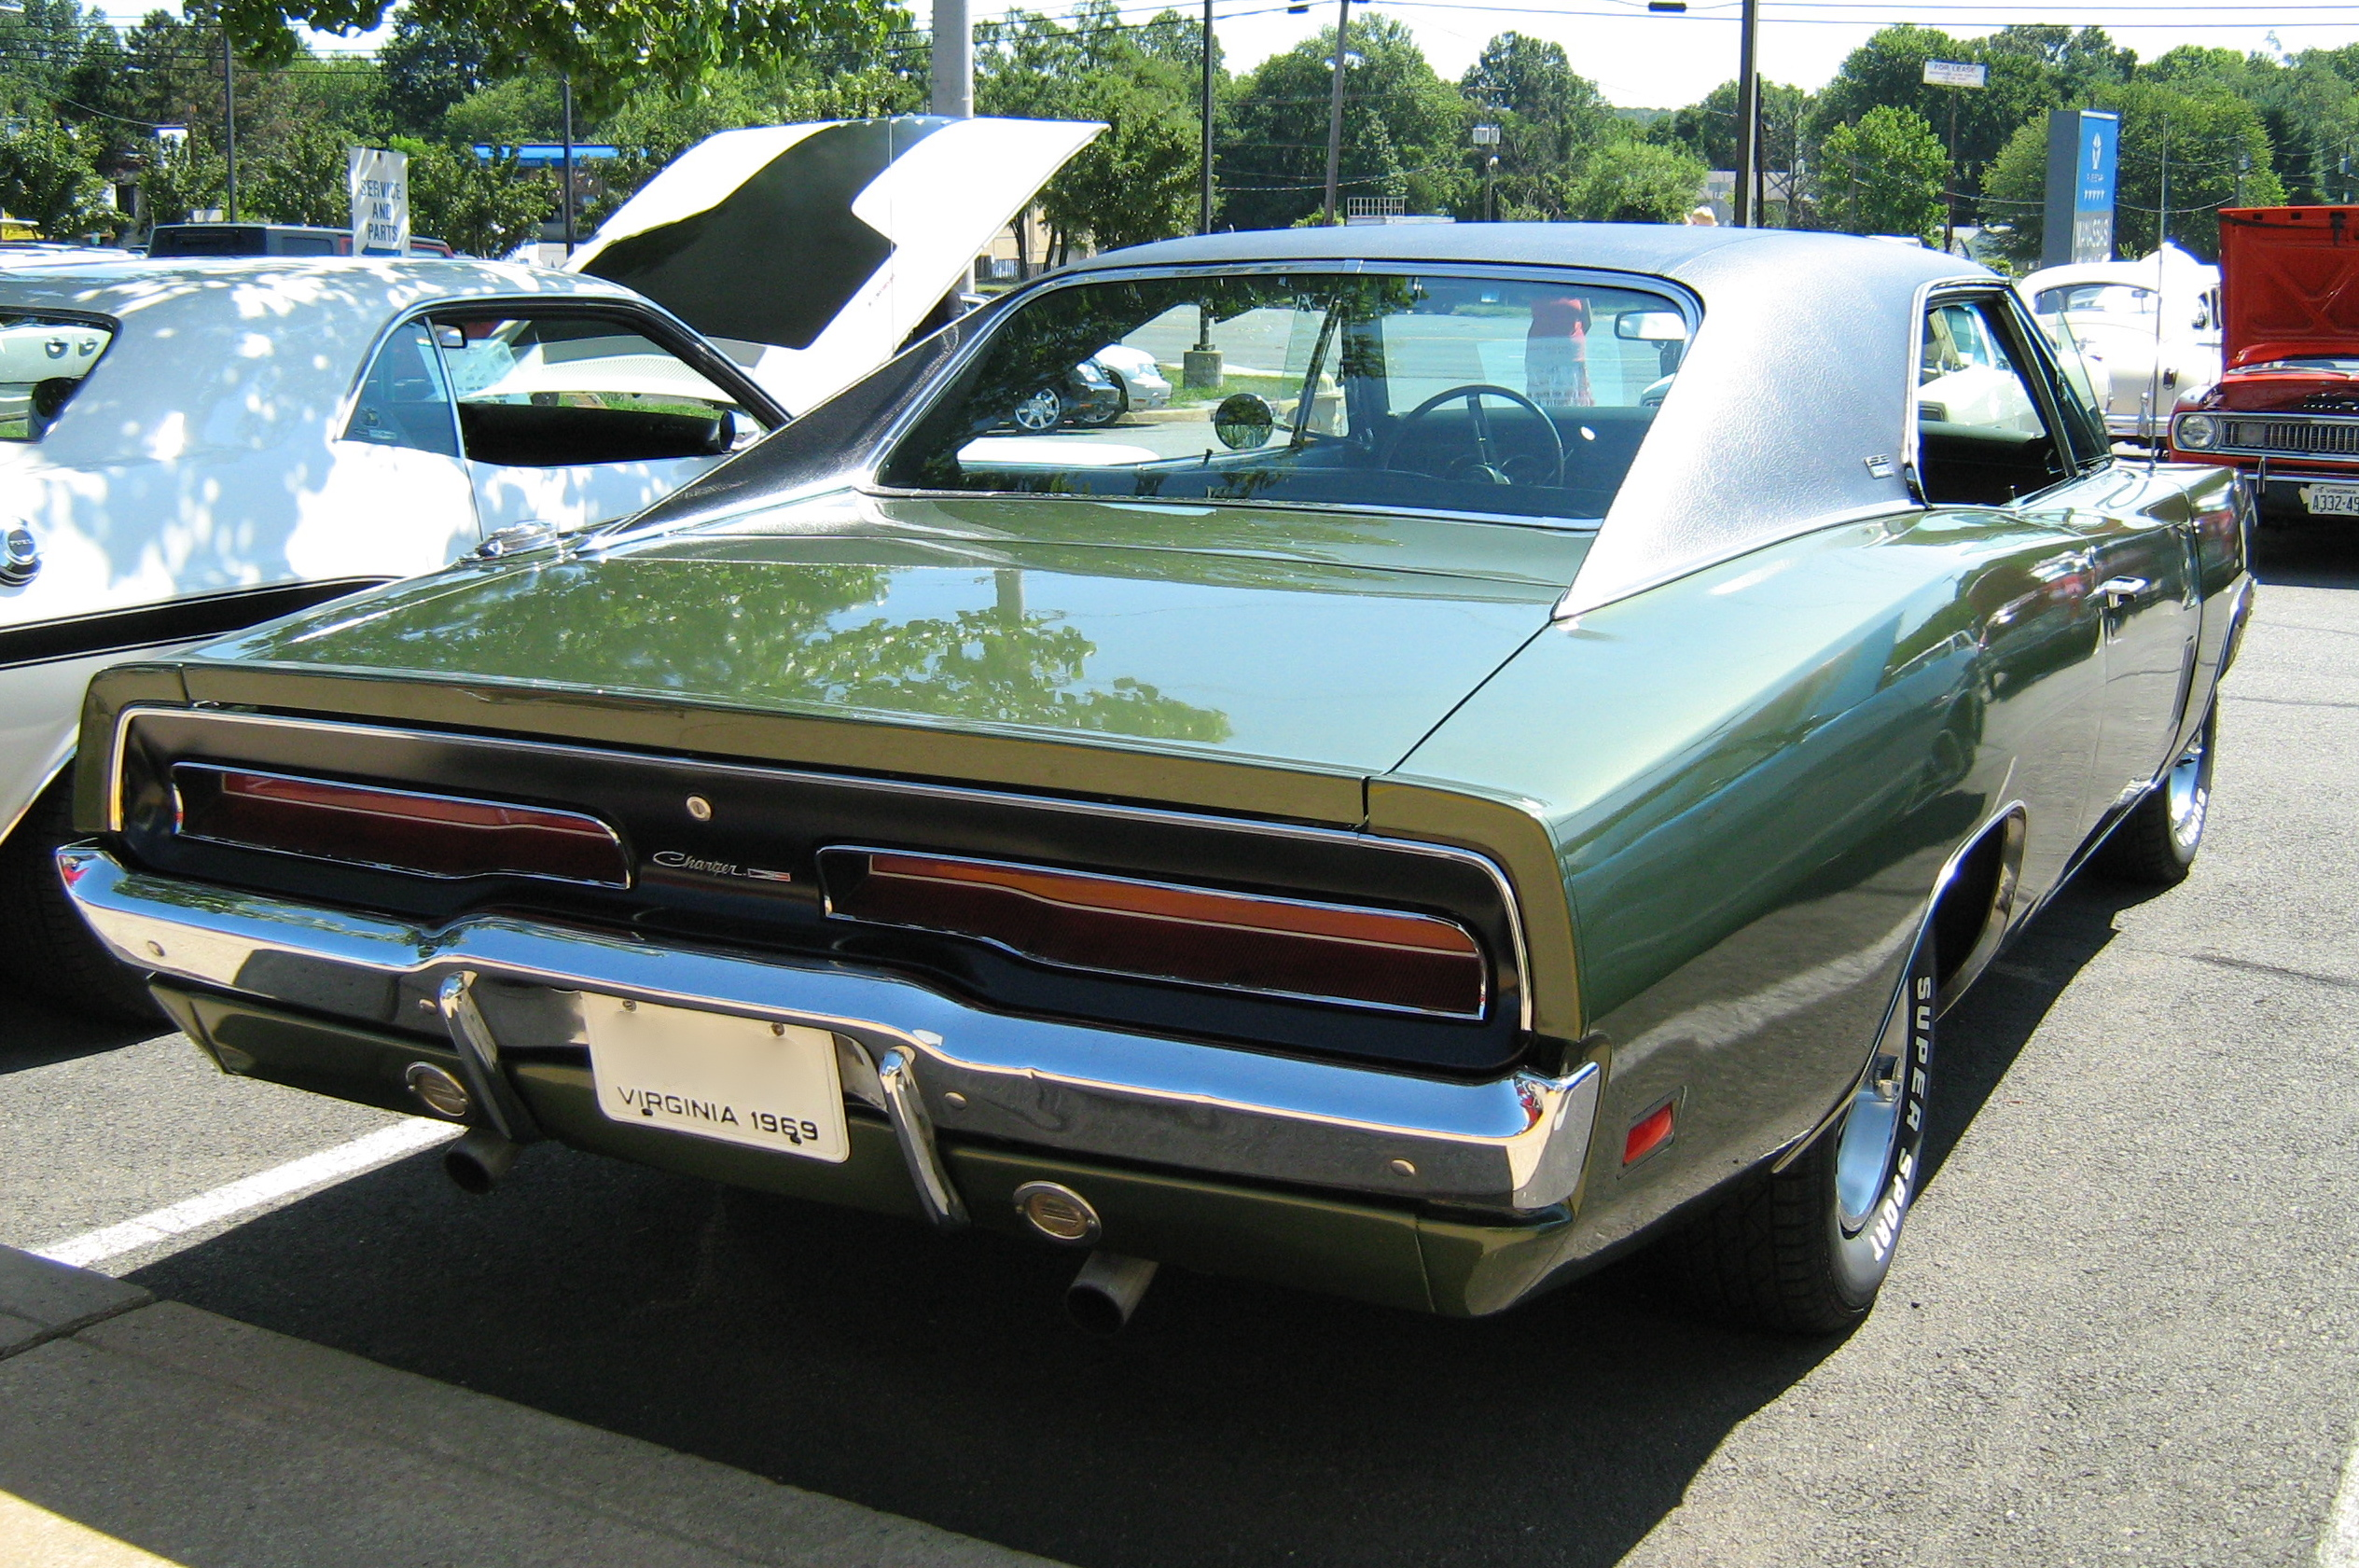 file 1969 dodge charger green wikimedia commons. Black Bedroom Furniture Sets. Home Design Ideas